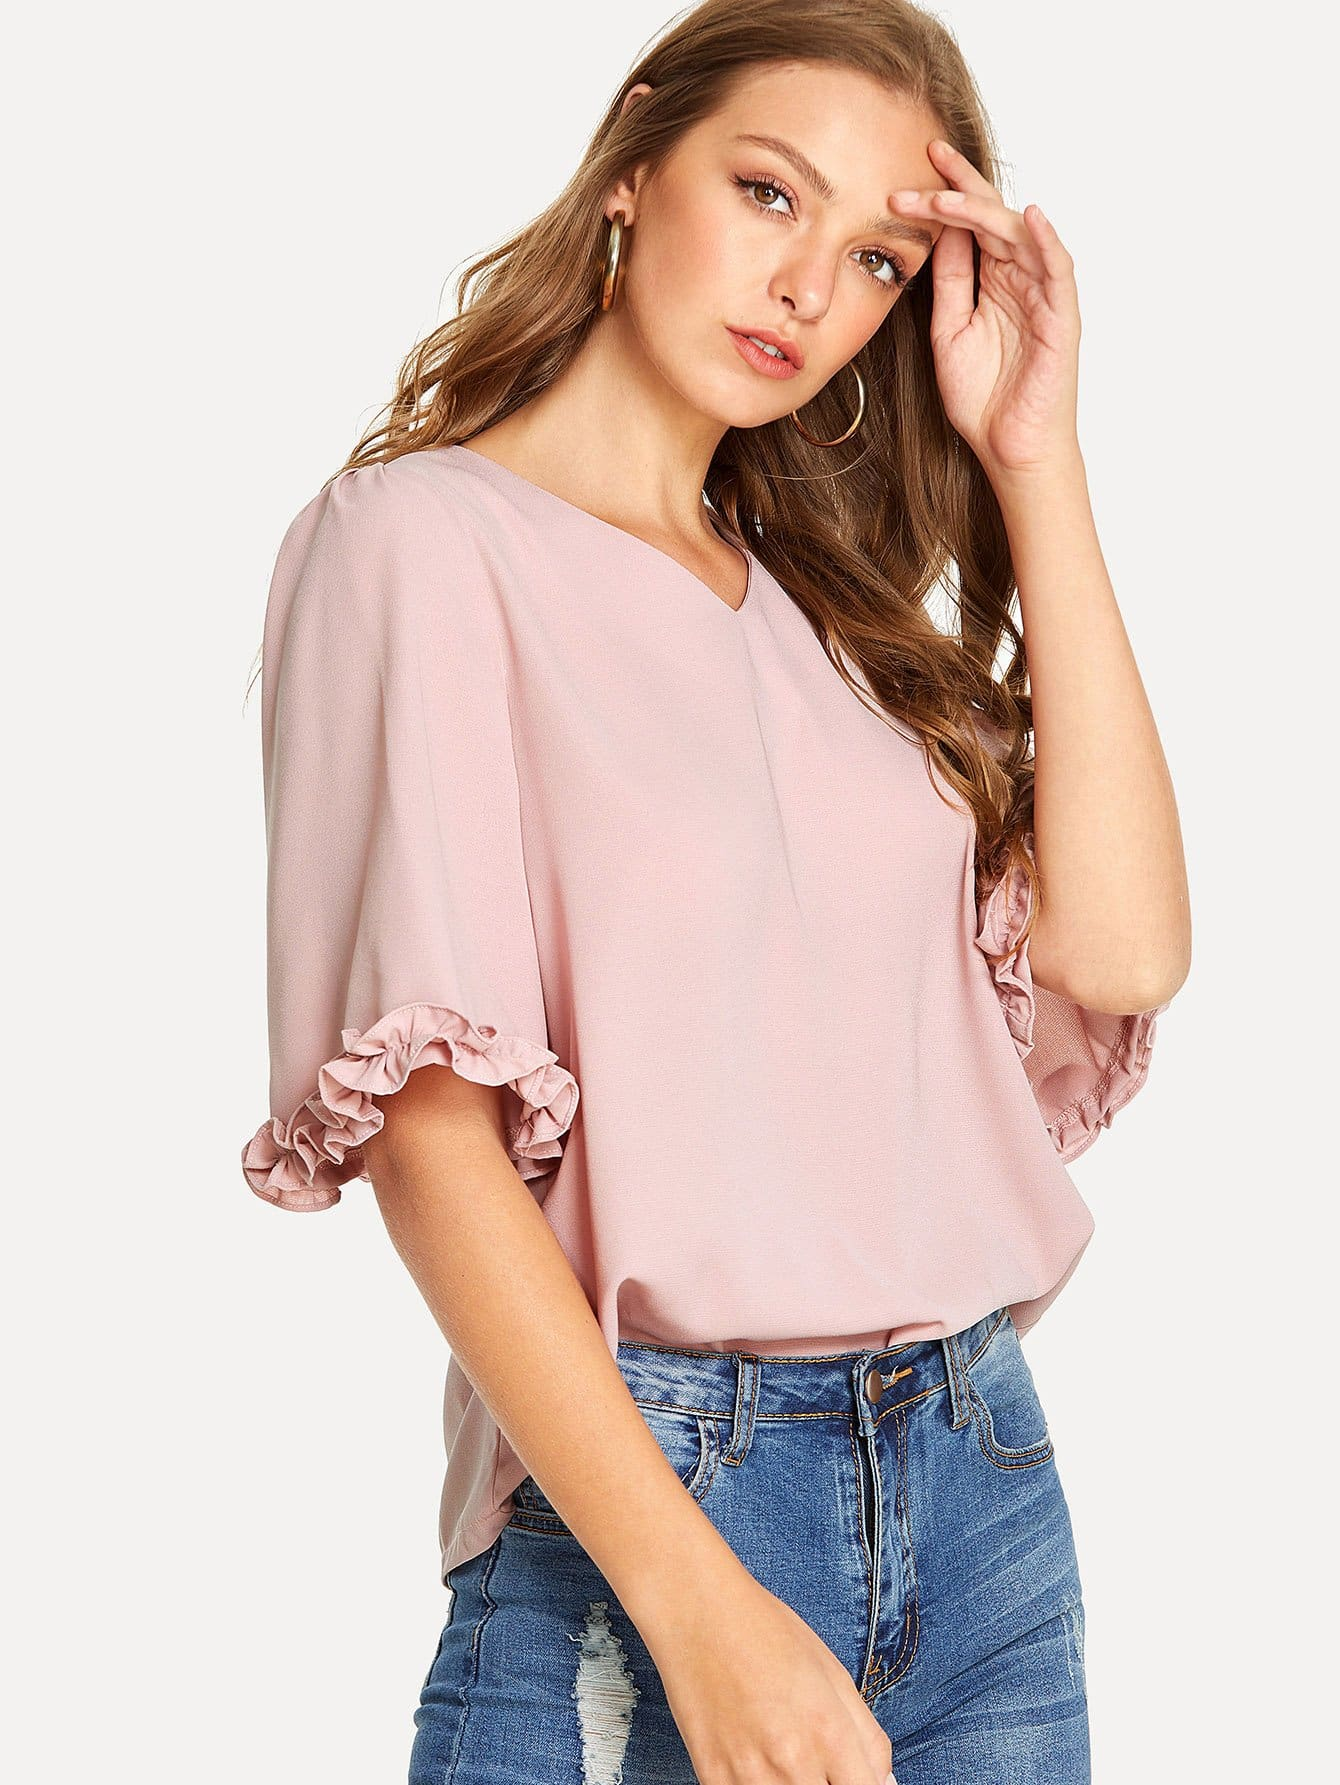 Midi Sleeves With Floral Binding Detail Blouse sheer dotted blouse with smocked detail